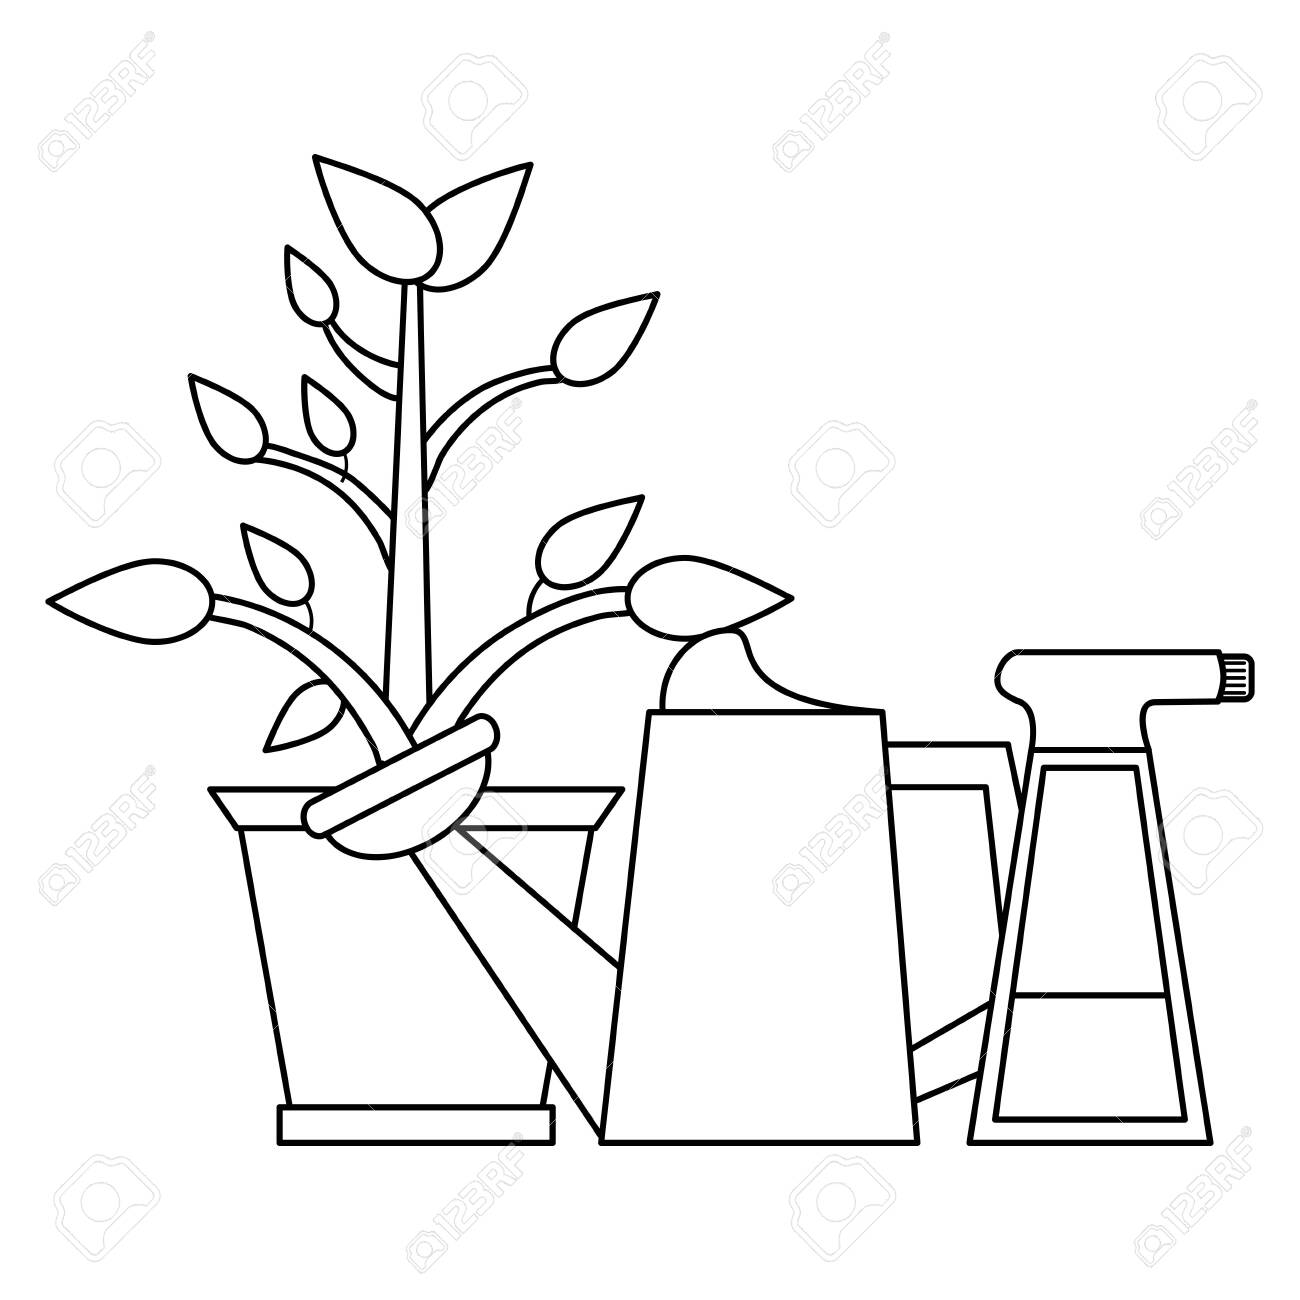 Pretty watering can clipart 3 - WikiClipArt